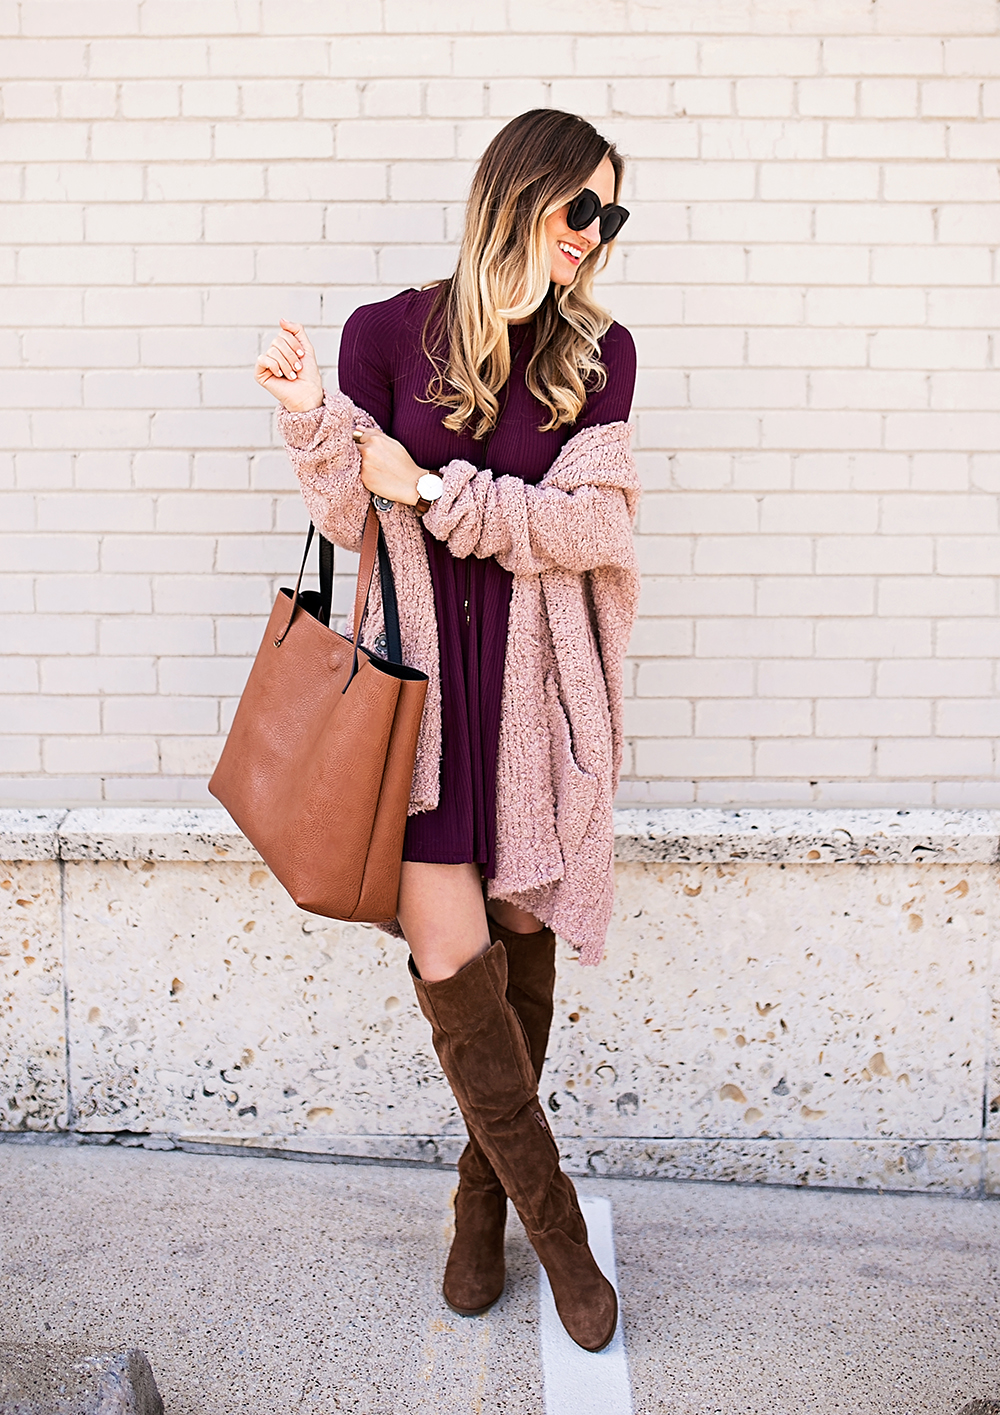 livvyland-blog-olivia-watson-cozy-fall-layers-dress-otk-boots-chunky-knit-cardigan-blush-pink-boho-outfit-9